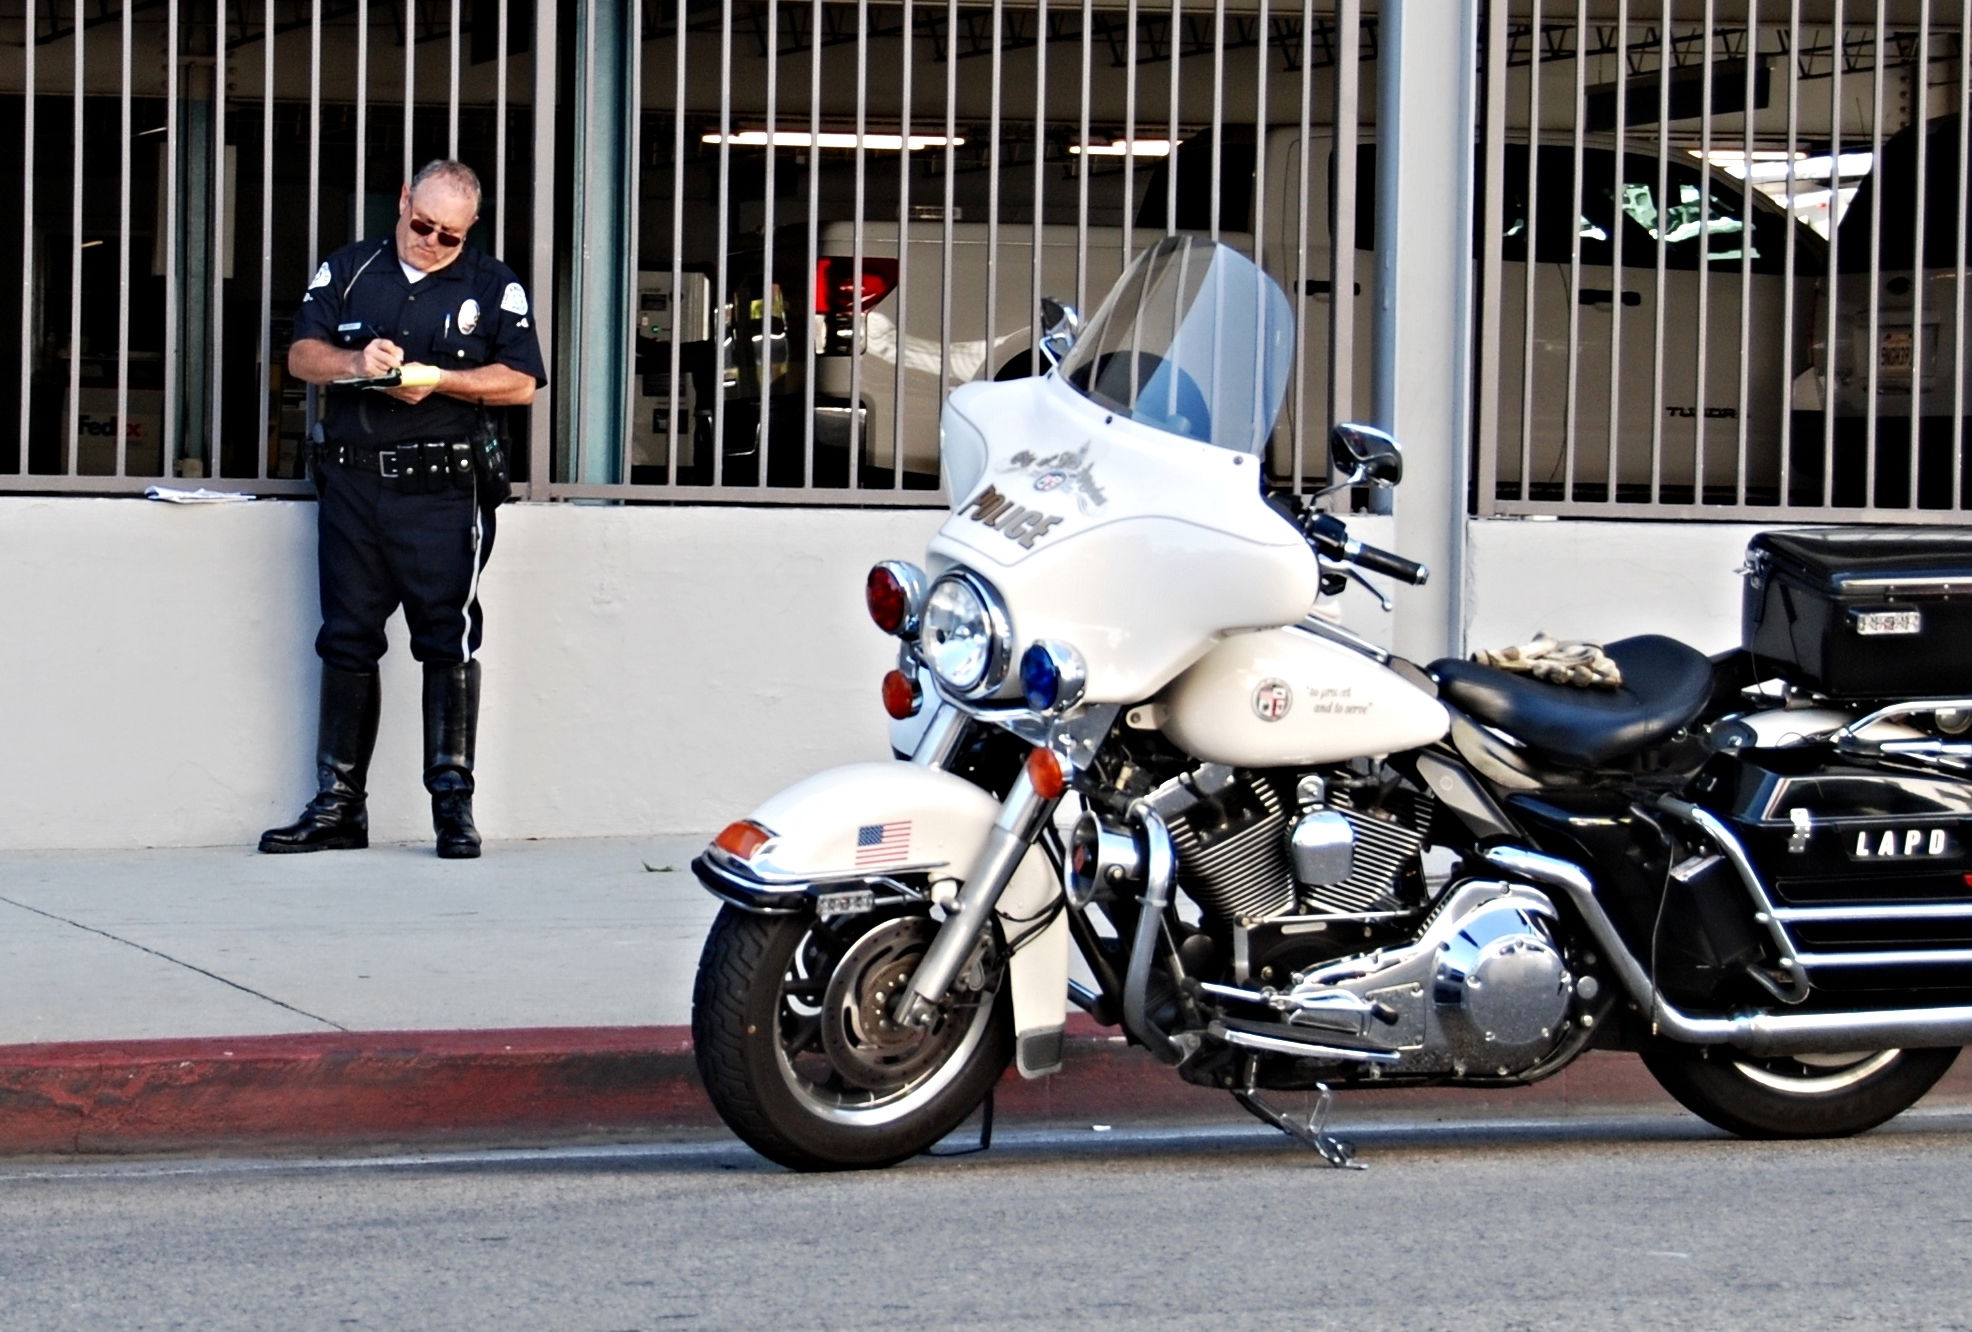 LAPD police officer issuing a traffic ticket.